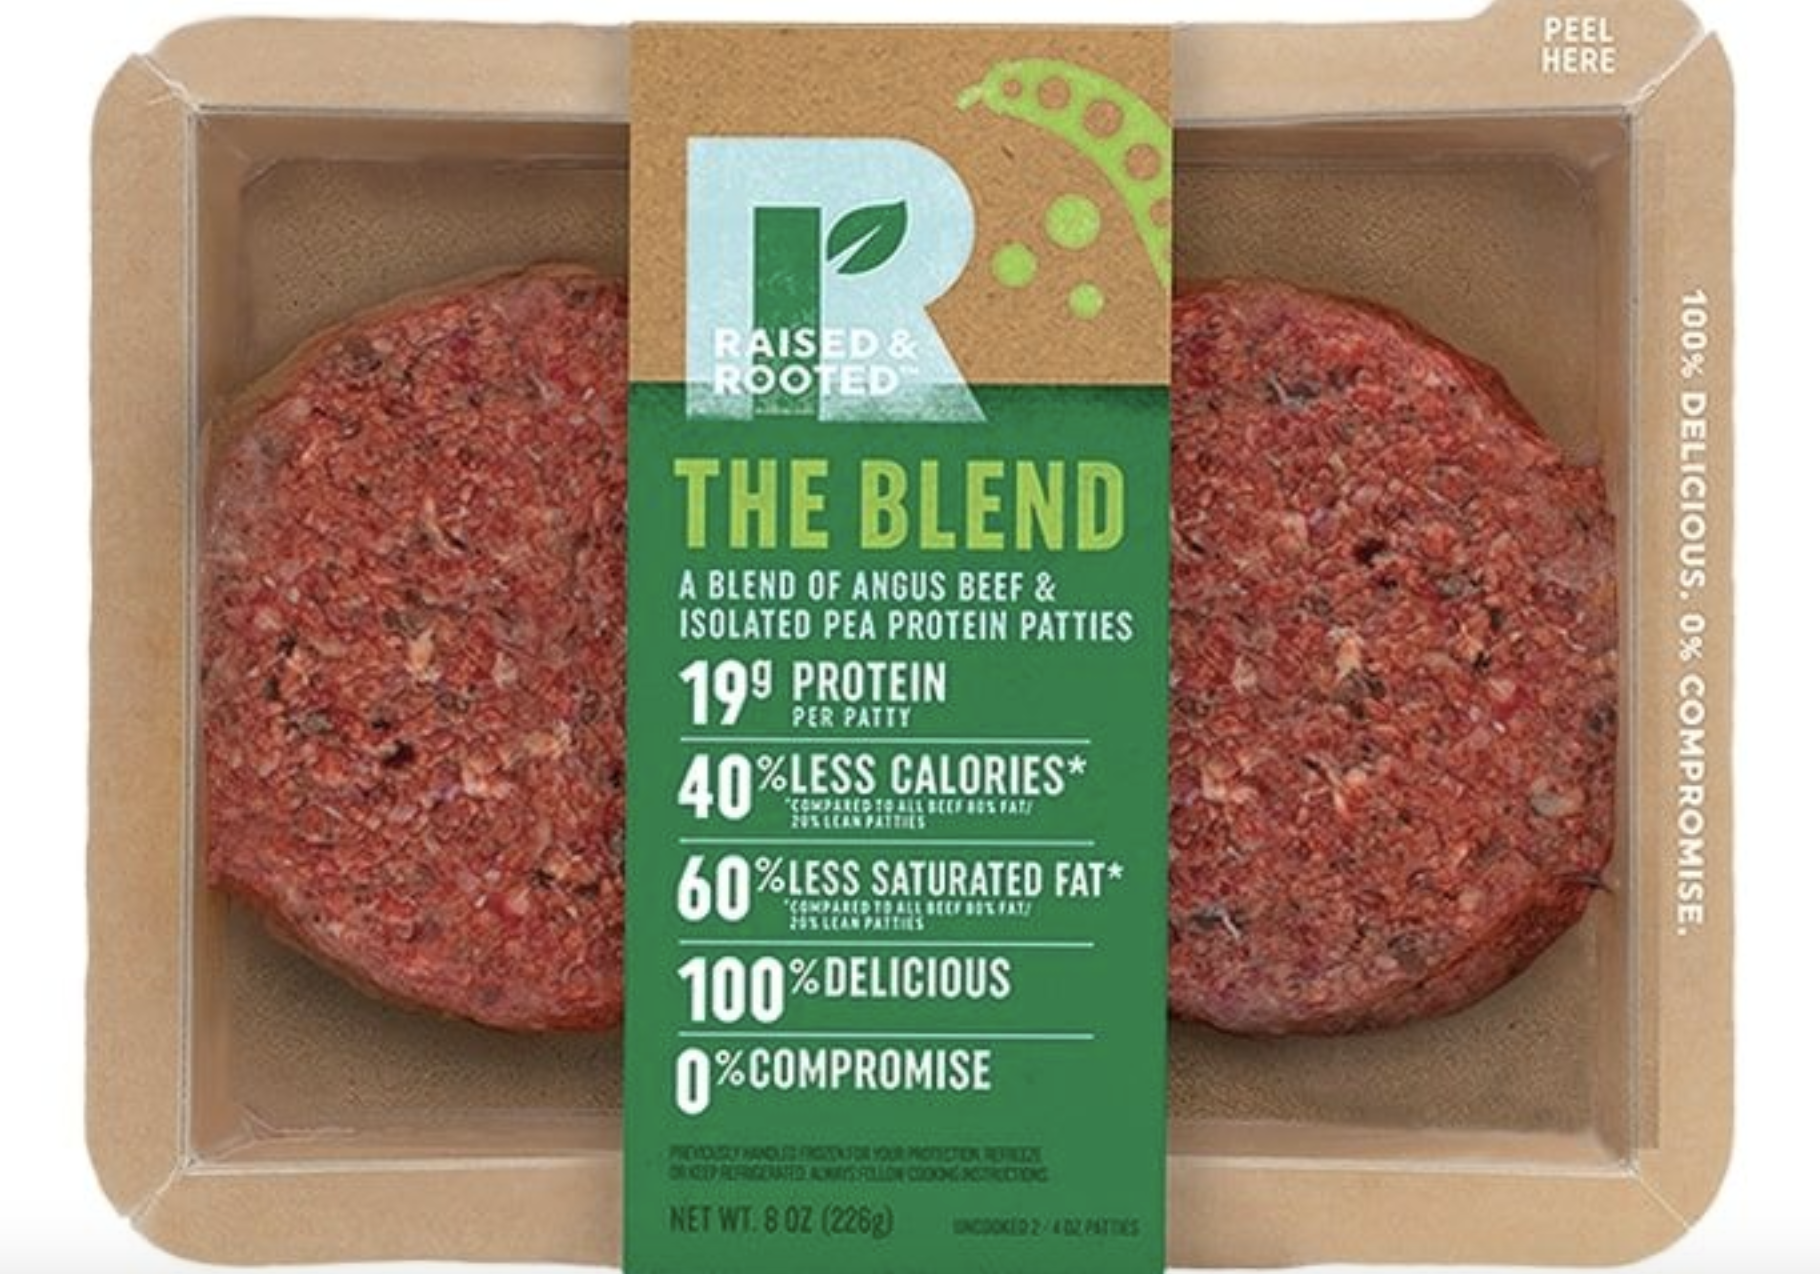 Alternative meat is here to stay, according to Tyson Foods